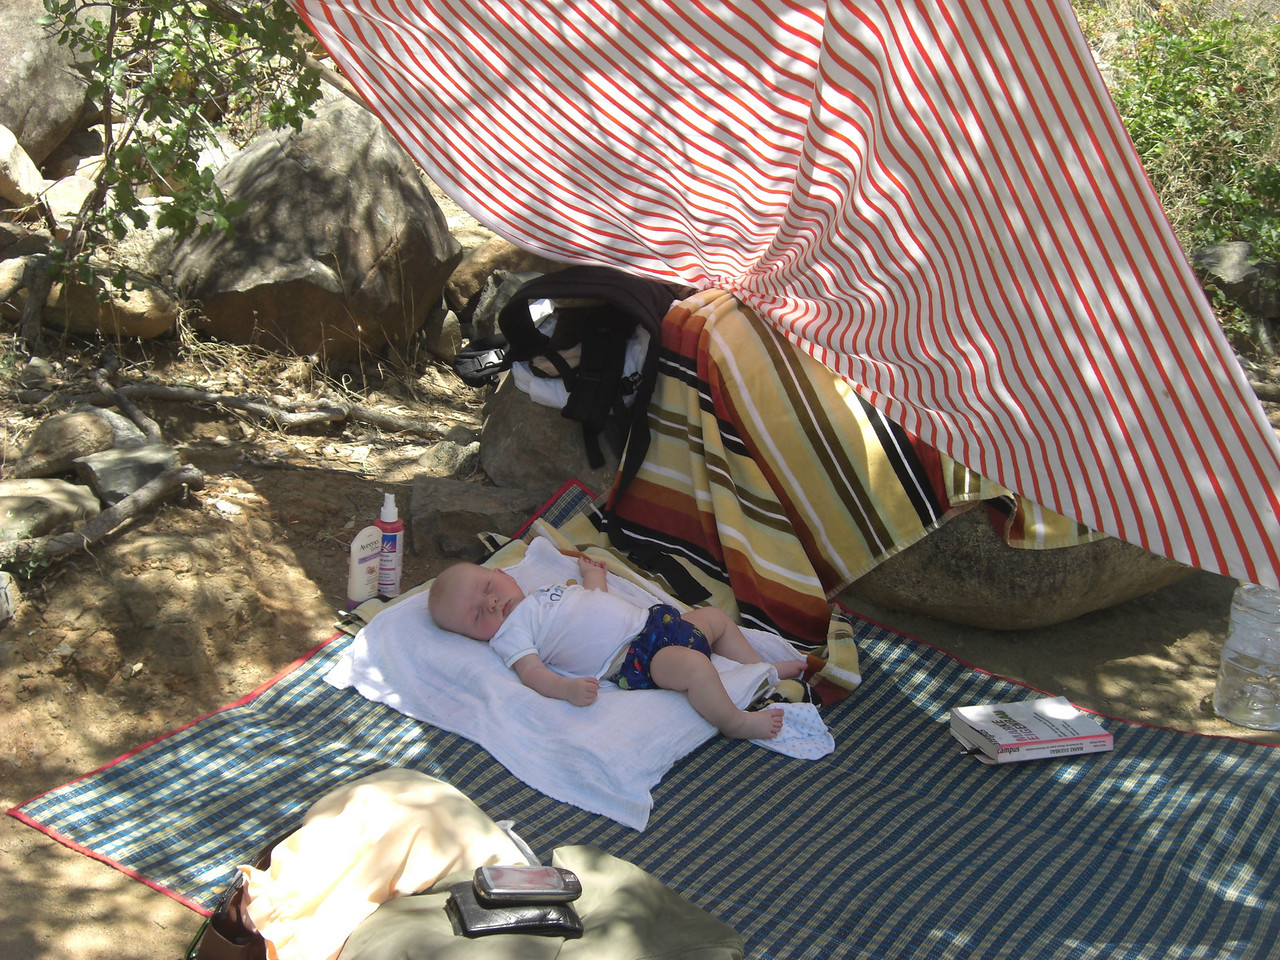 Passed out in the shade at South Yuba River